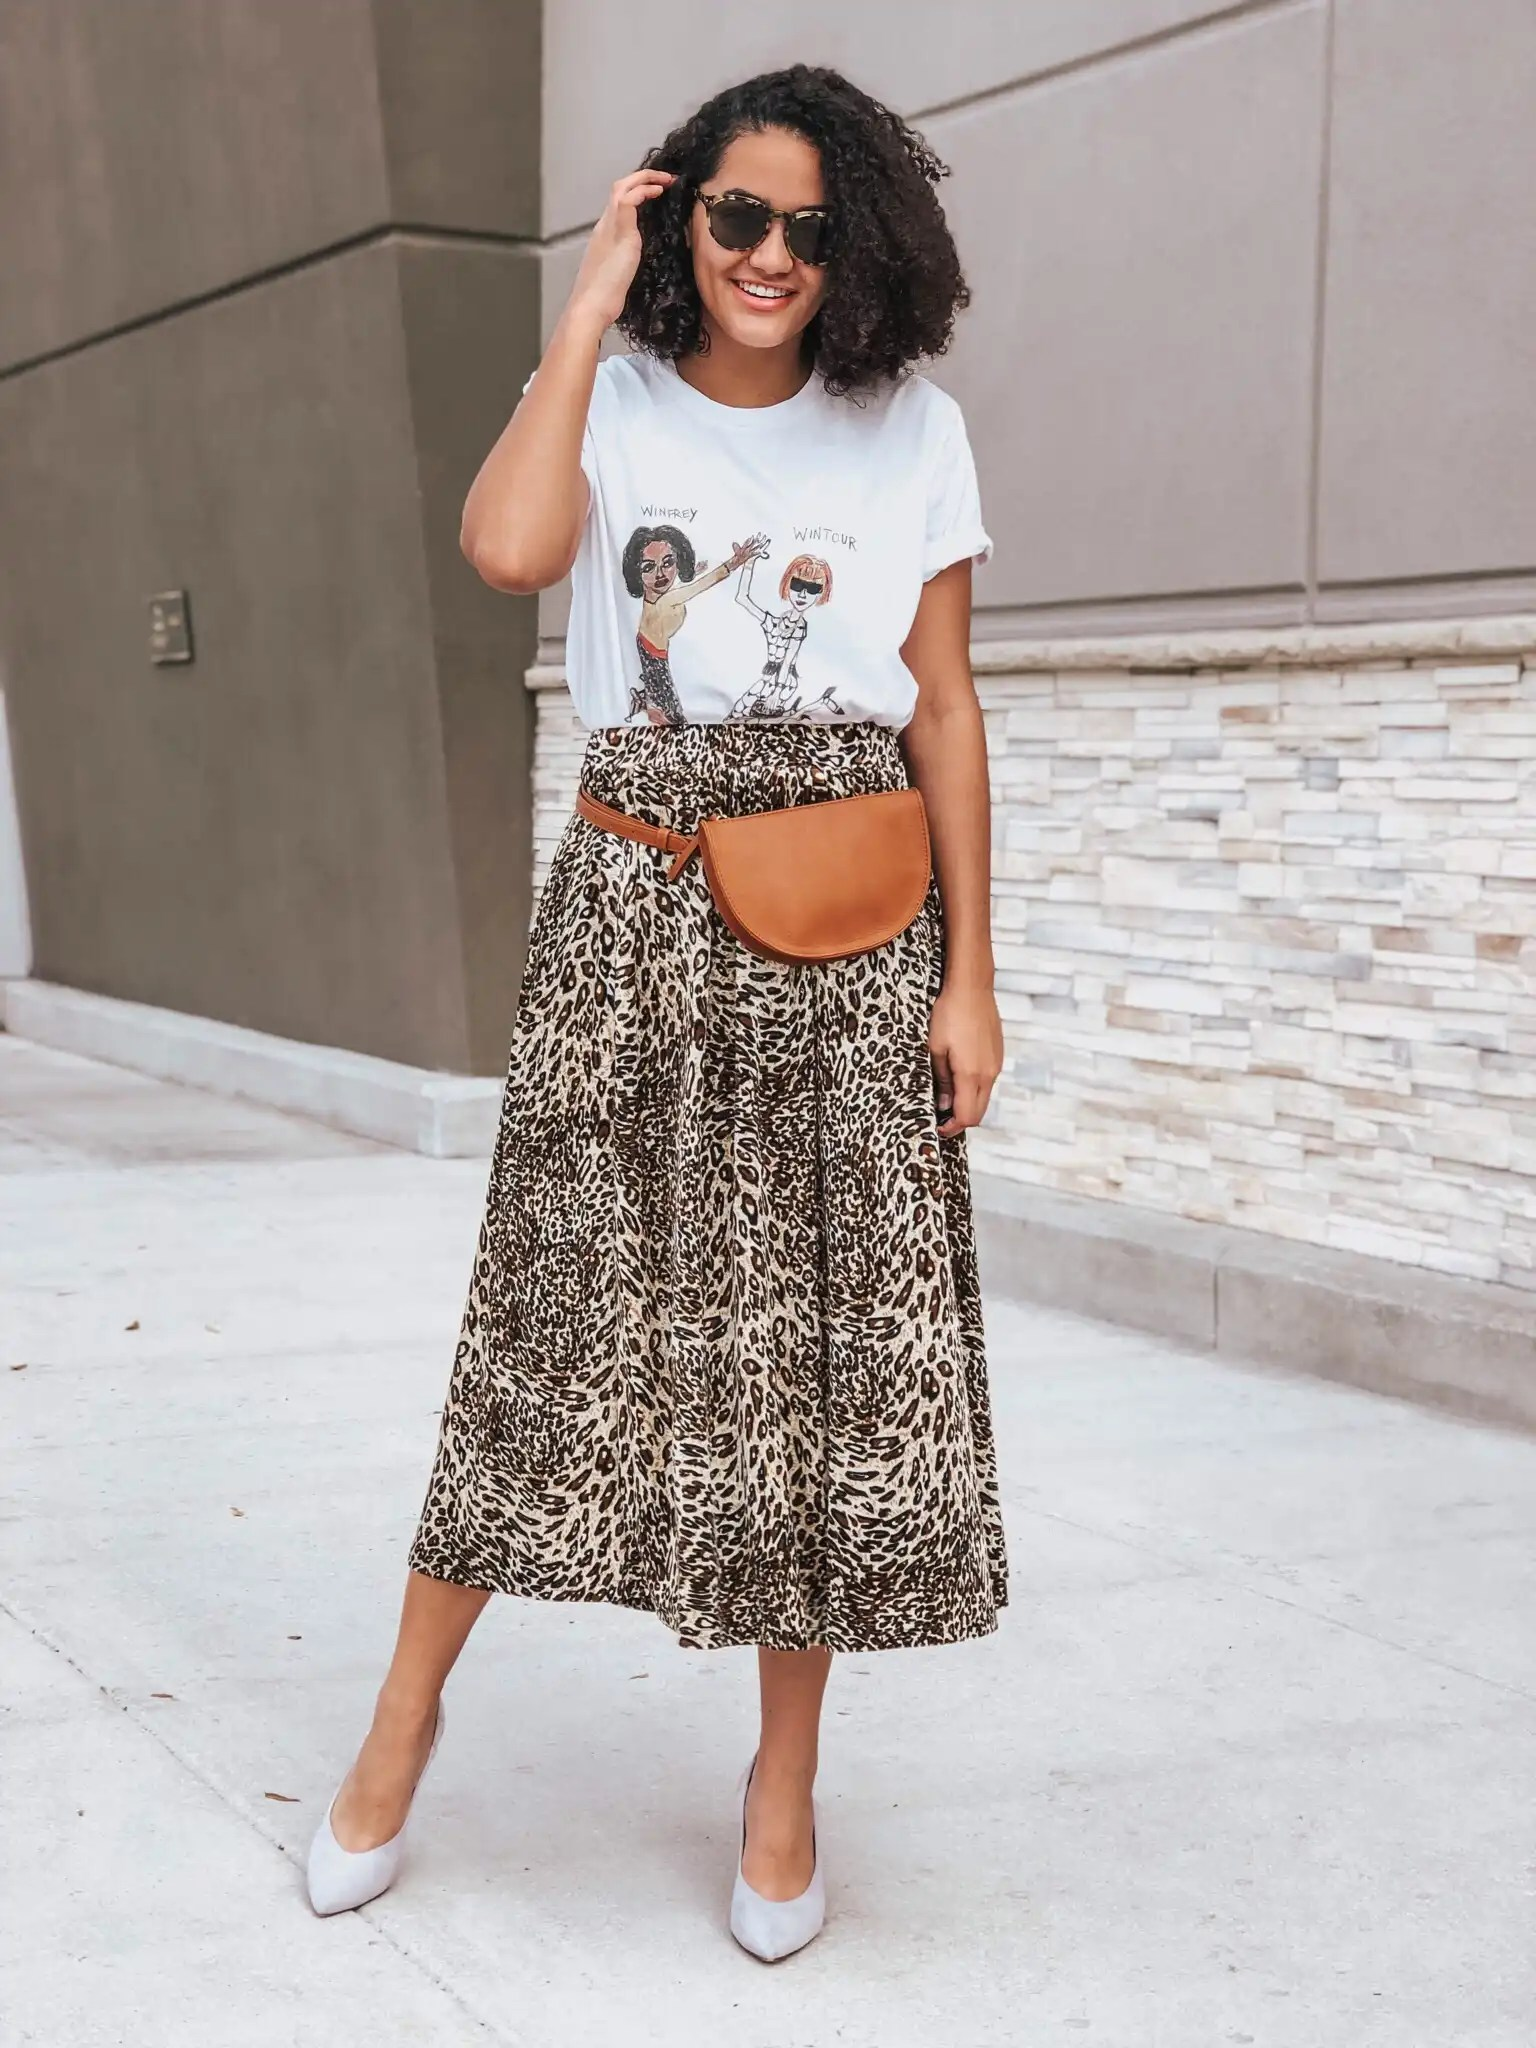 Graphic Tee Leopard Print Skirt Purple Heels